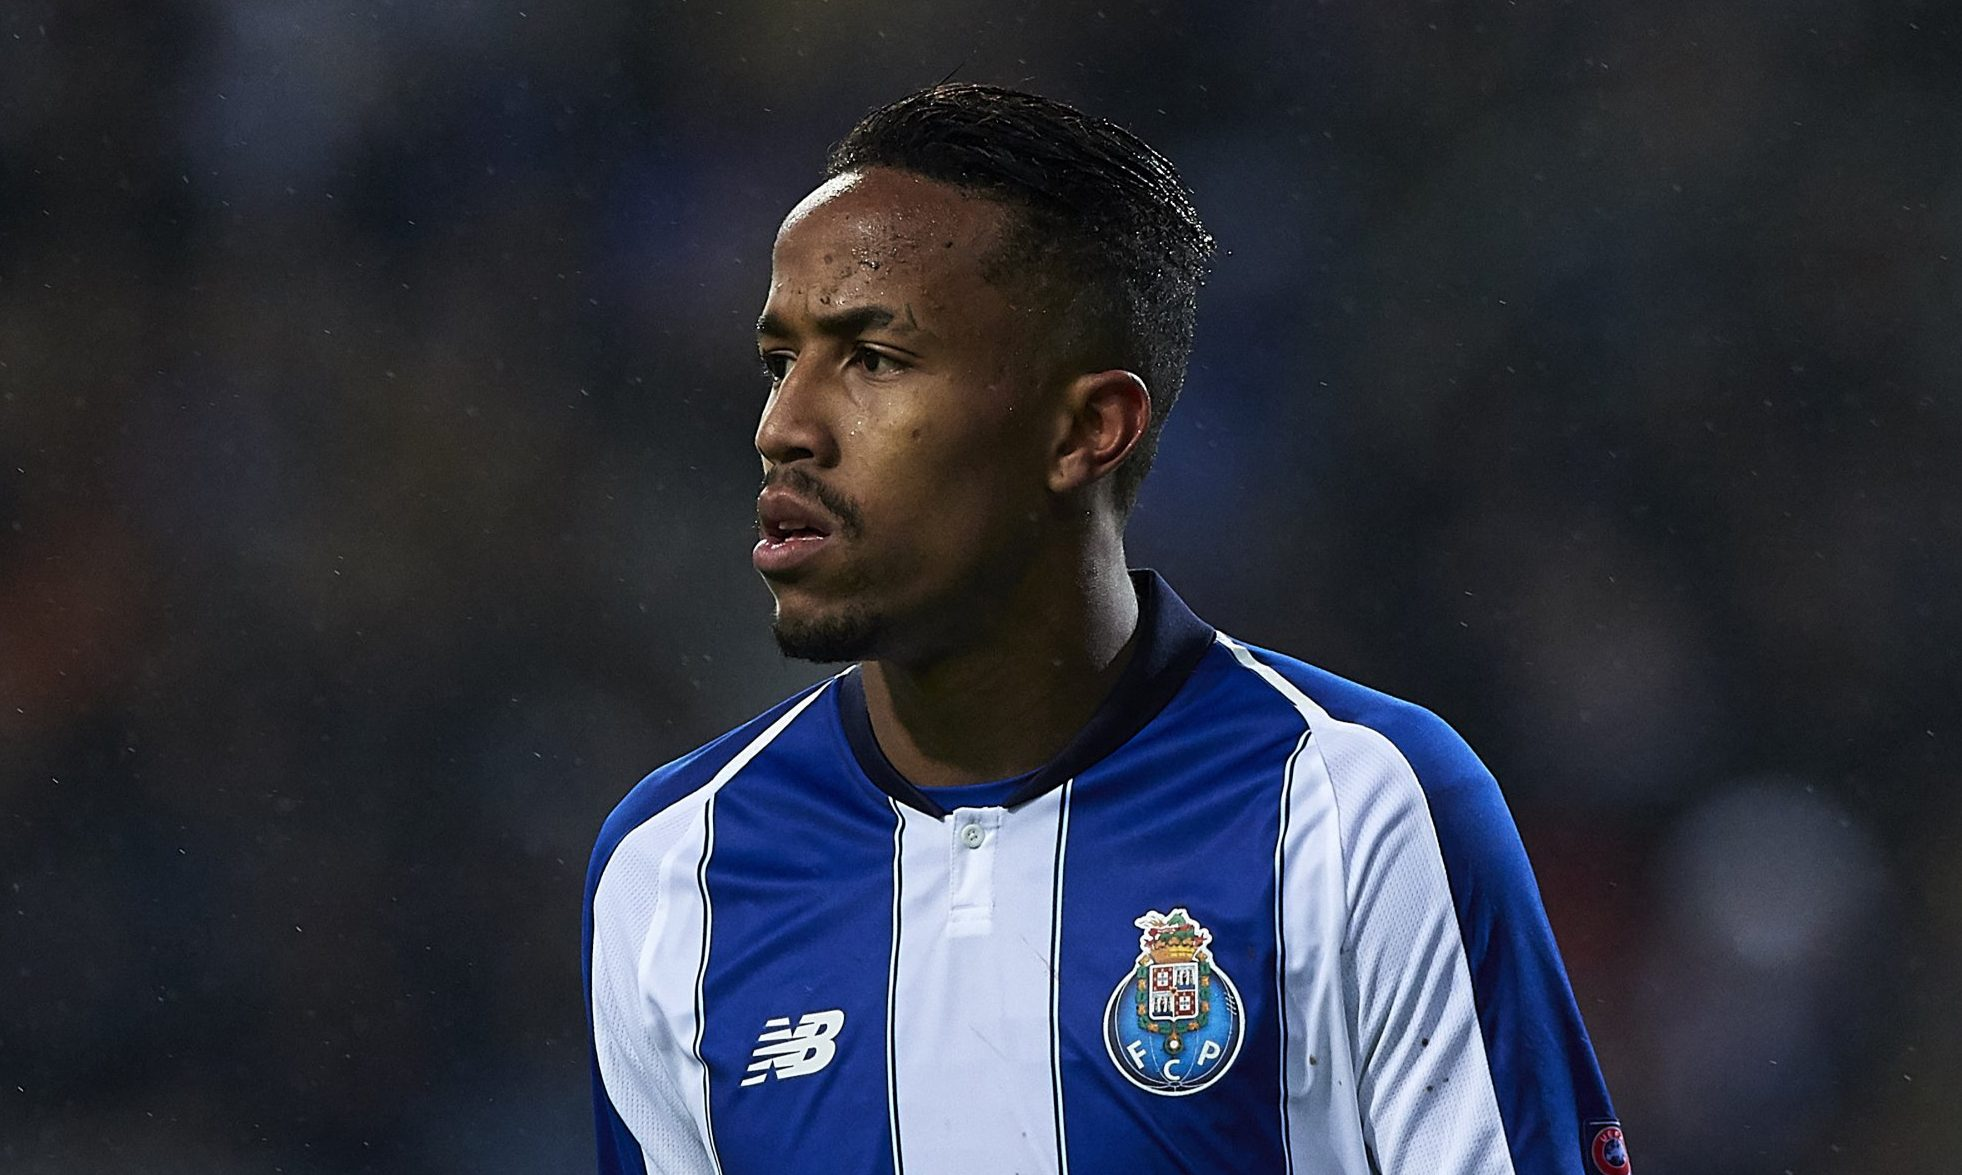 PORTO, PORTUGAL - NOVEMBER 06: Eder Militao of FC Porto looks on during the Group D match of the UEFA Champions League between FC Porto and FC Lokomotiv Moscow at Estadio do Dragao on November 6, 2018 in Porto, Portugal. (Photo by Quality Sport Images/Getty Images)